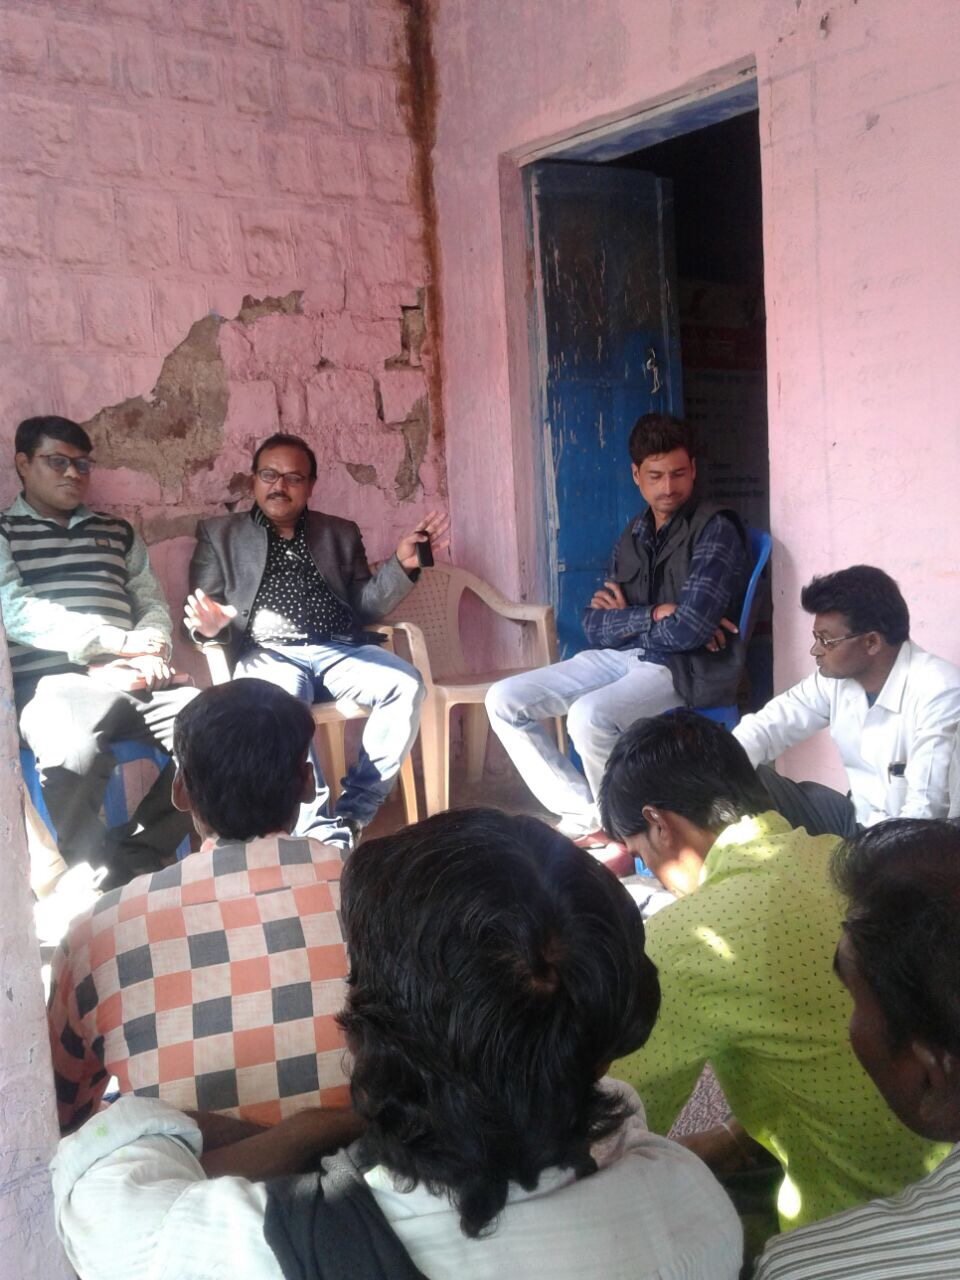 Group discussions and meetings on NSV and the need for greater male engagement held aross districts in Rajasthan.